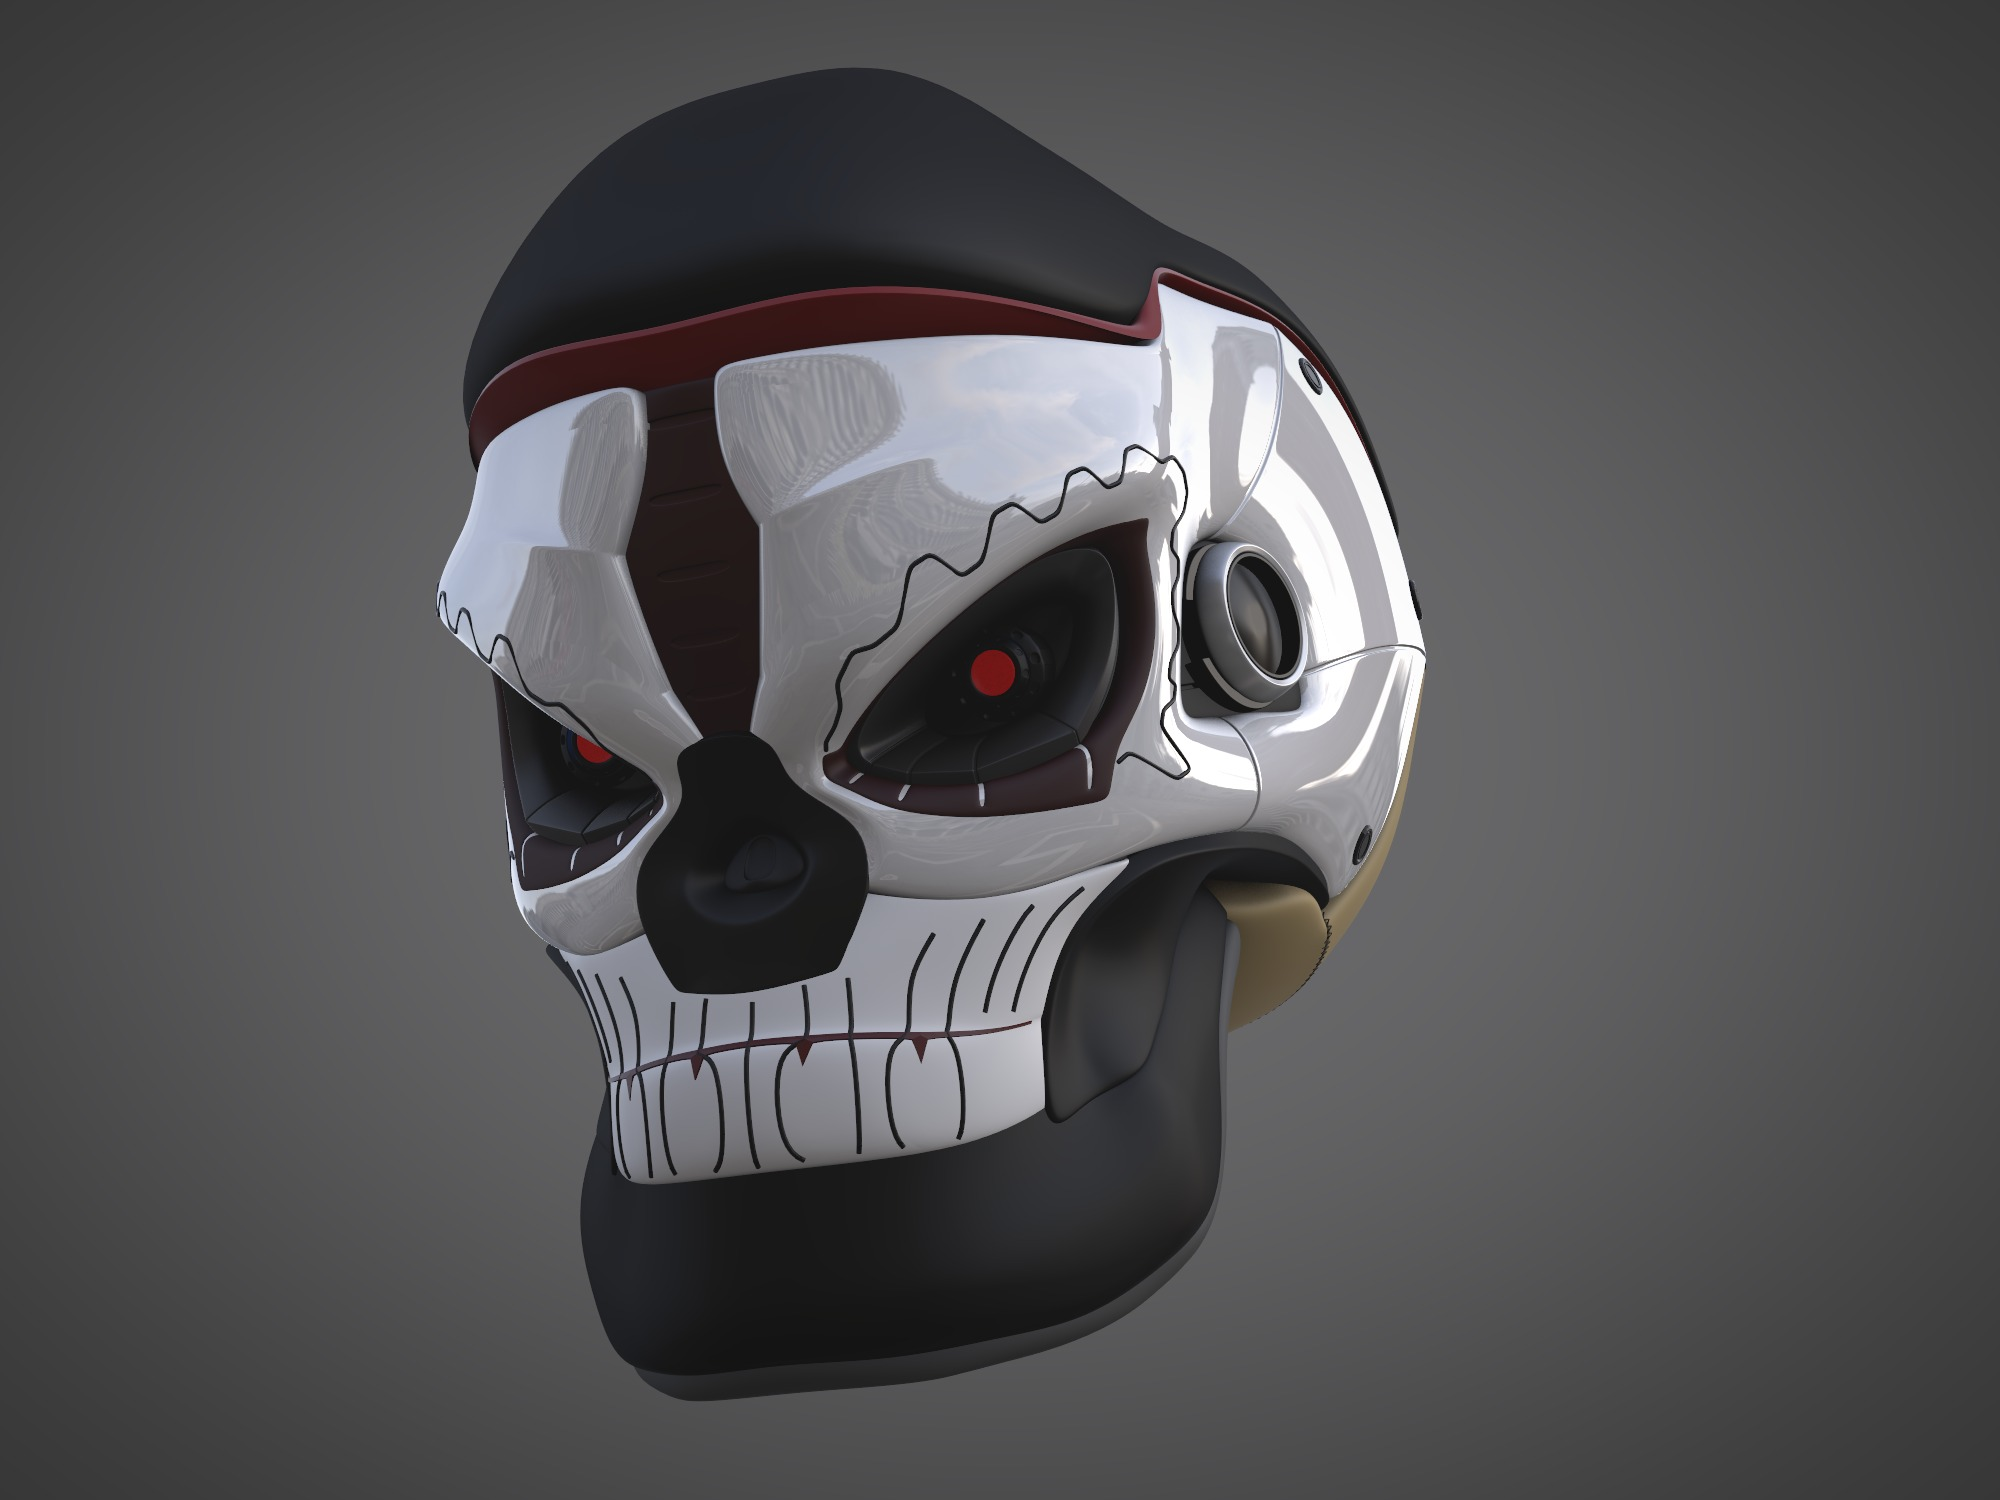 Tech Mex Skull - 3D design by matt_one on Oct 7, 2018